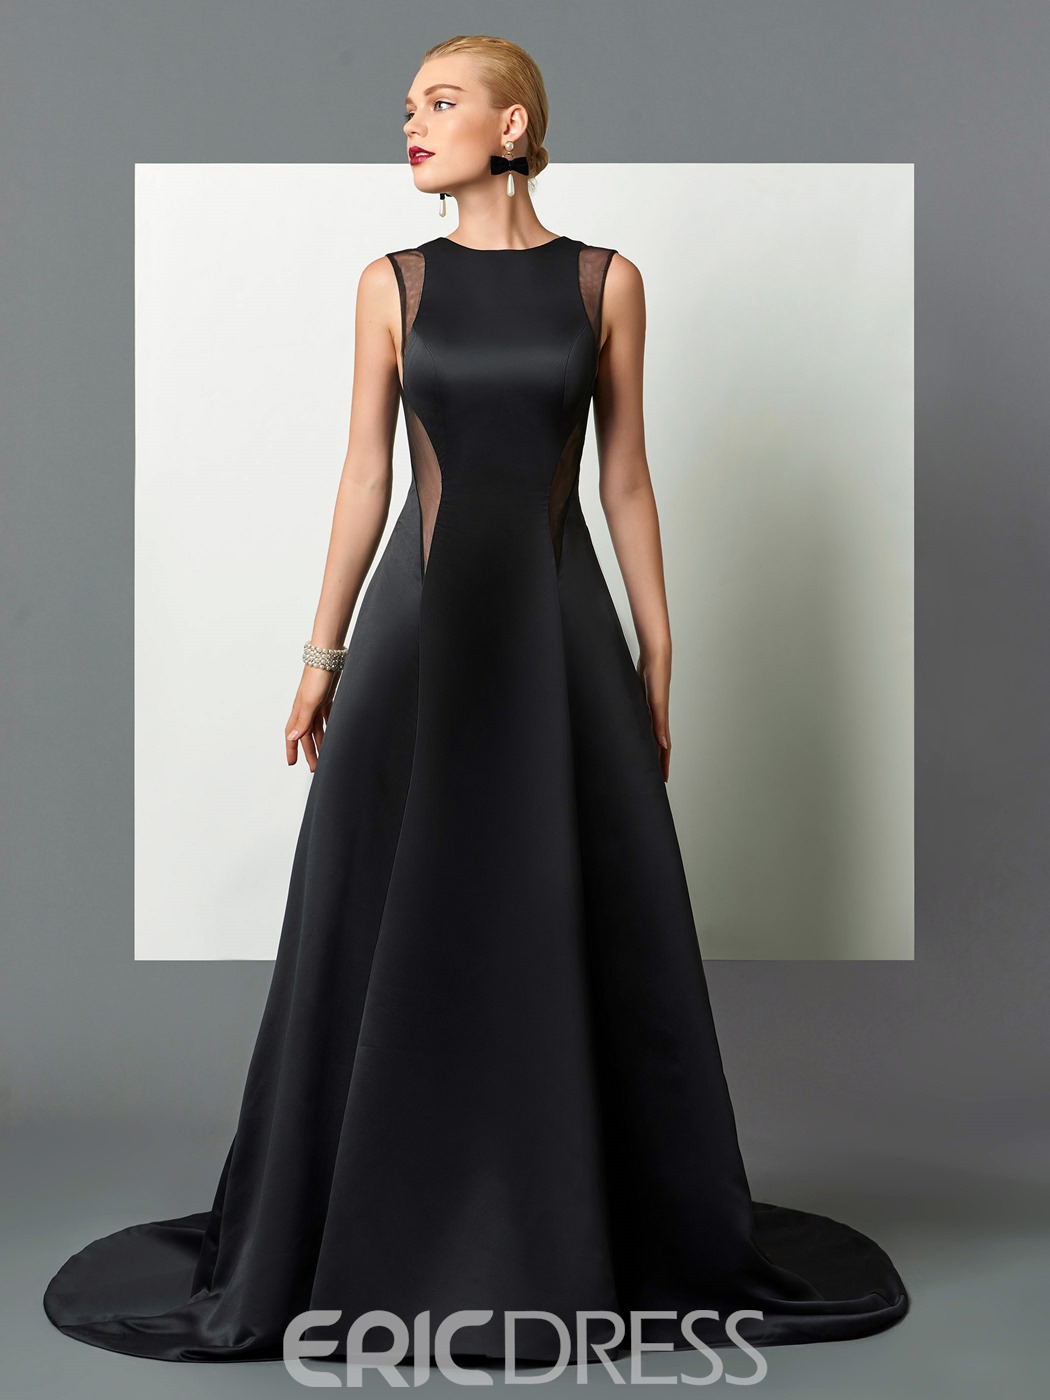 Ericdress Classic Black A Line Scoop Neck Deep Back Long Evening Dress With Court Train